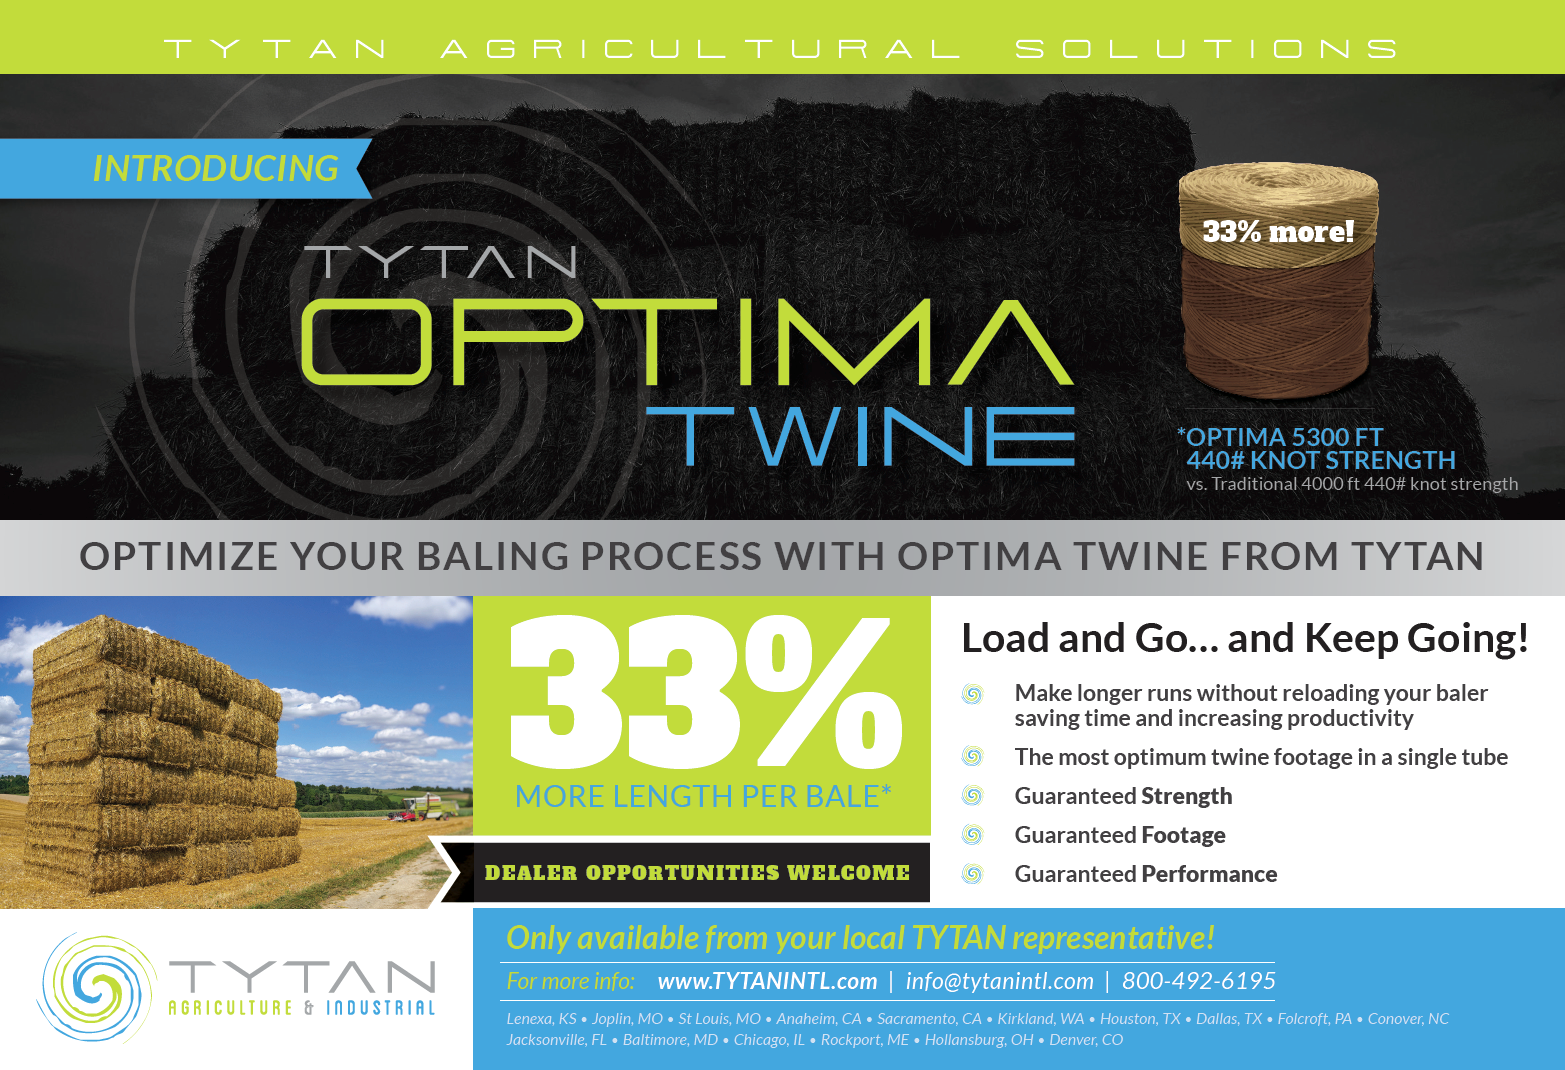 TYTAN Optima Ad